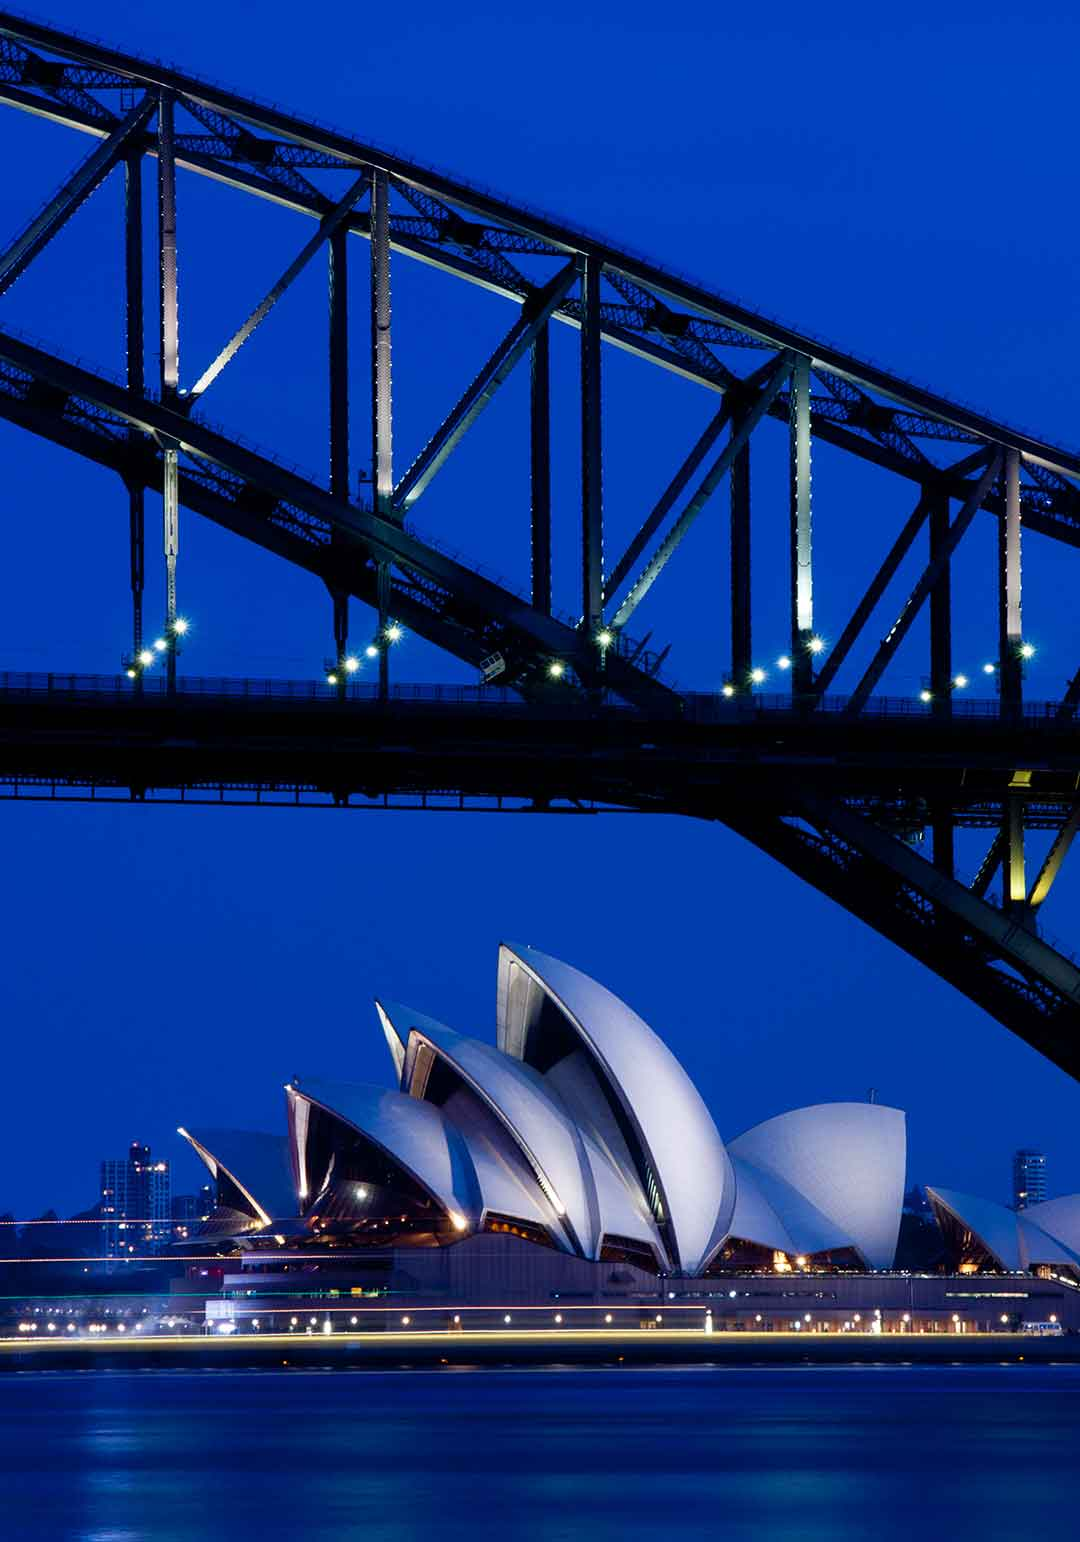 Image of Sydney Opera House at night from Blues Point Reserve